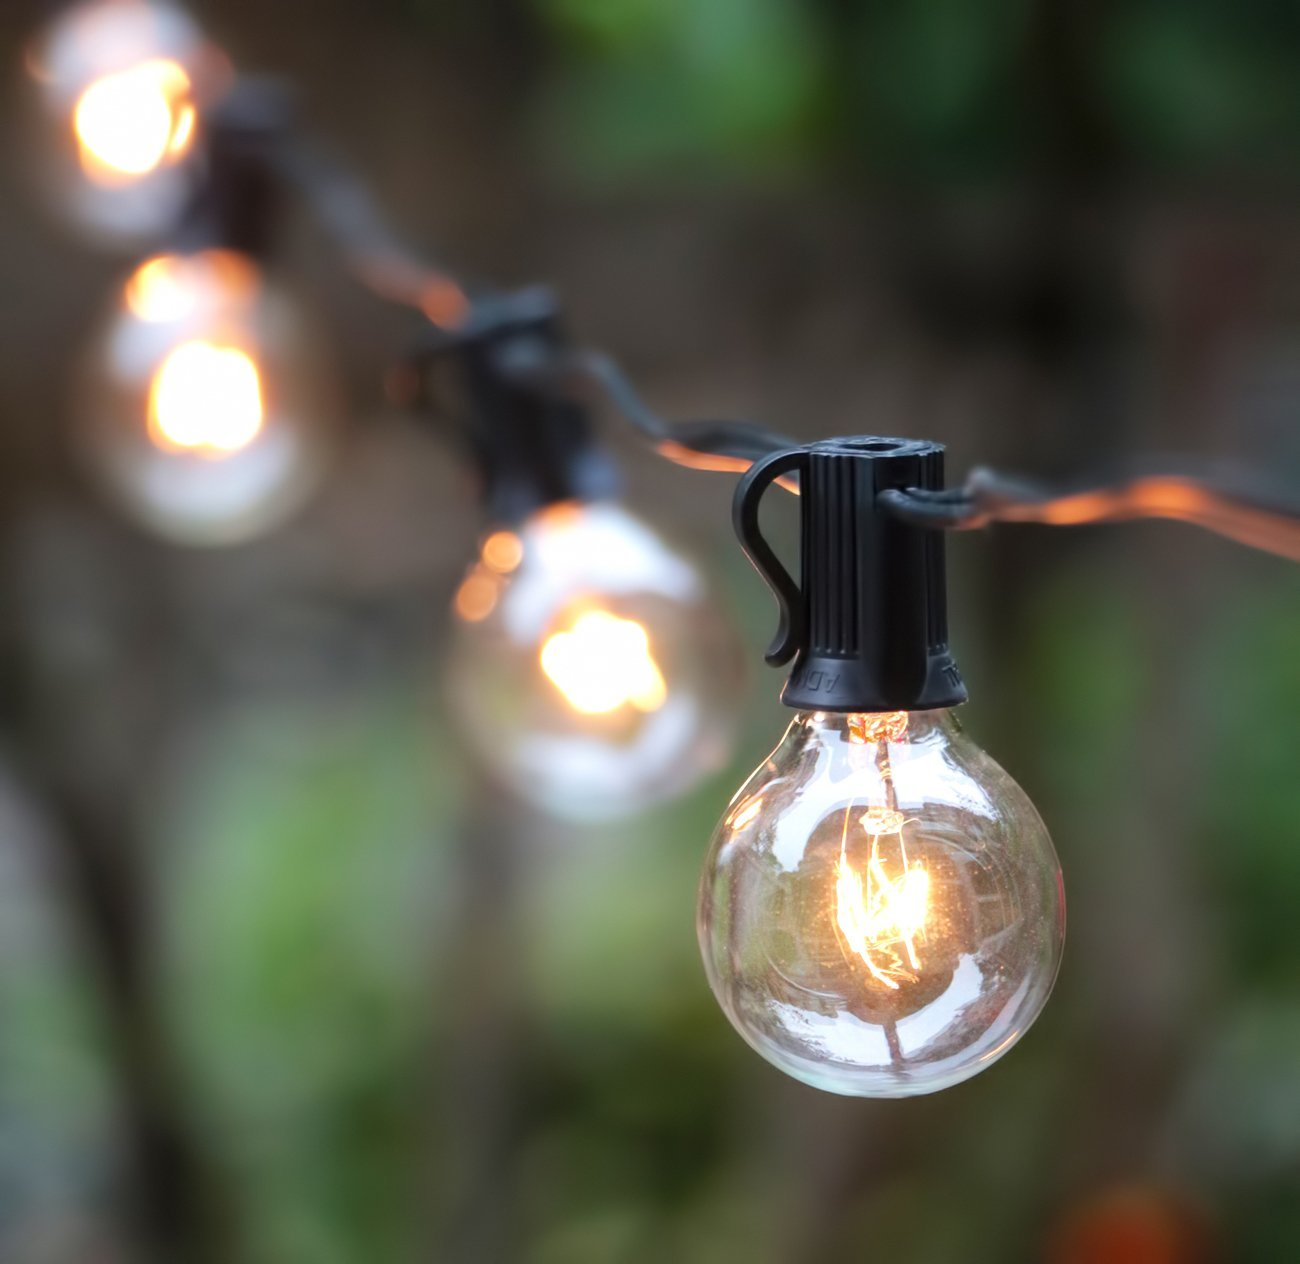 String Garden Lights Indoor Outdoor : 25ft G40 Globe String Lights with Bulbs UL Listed for Indoor Outdoor Commerci eBay